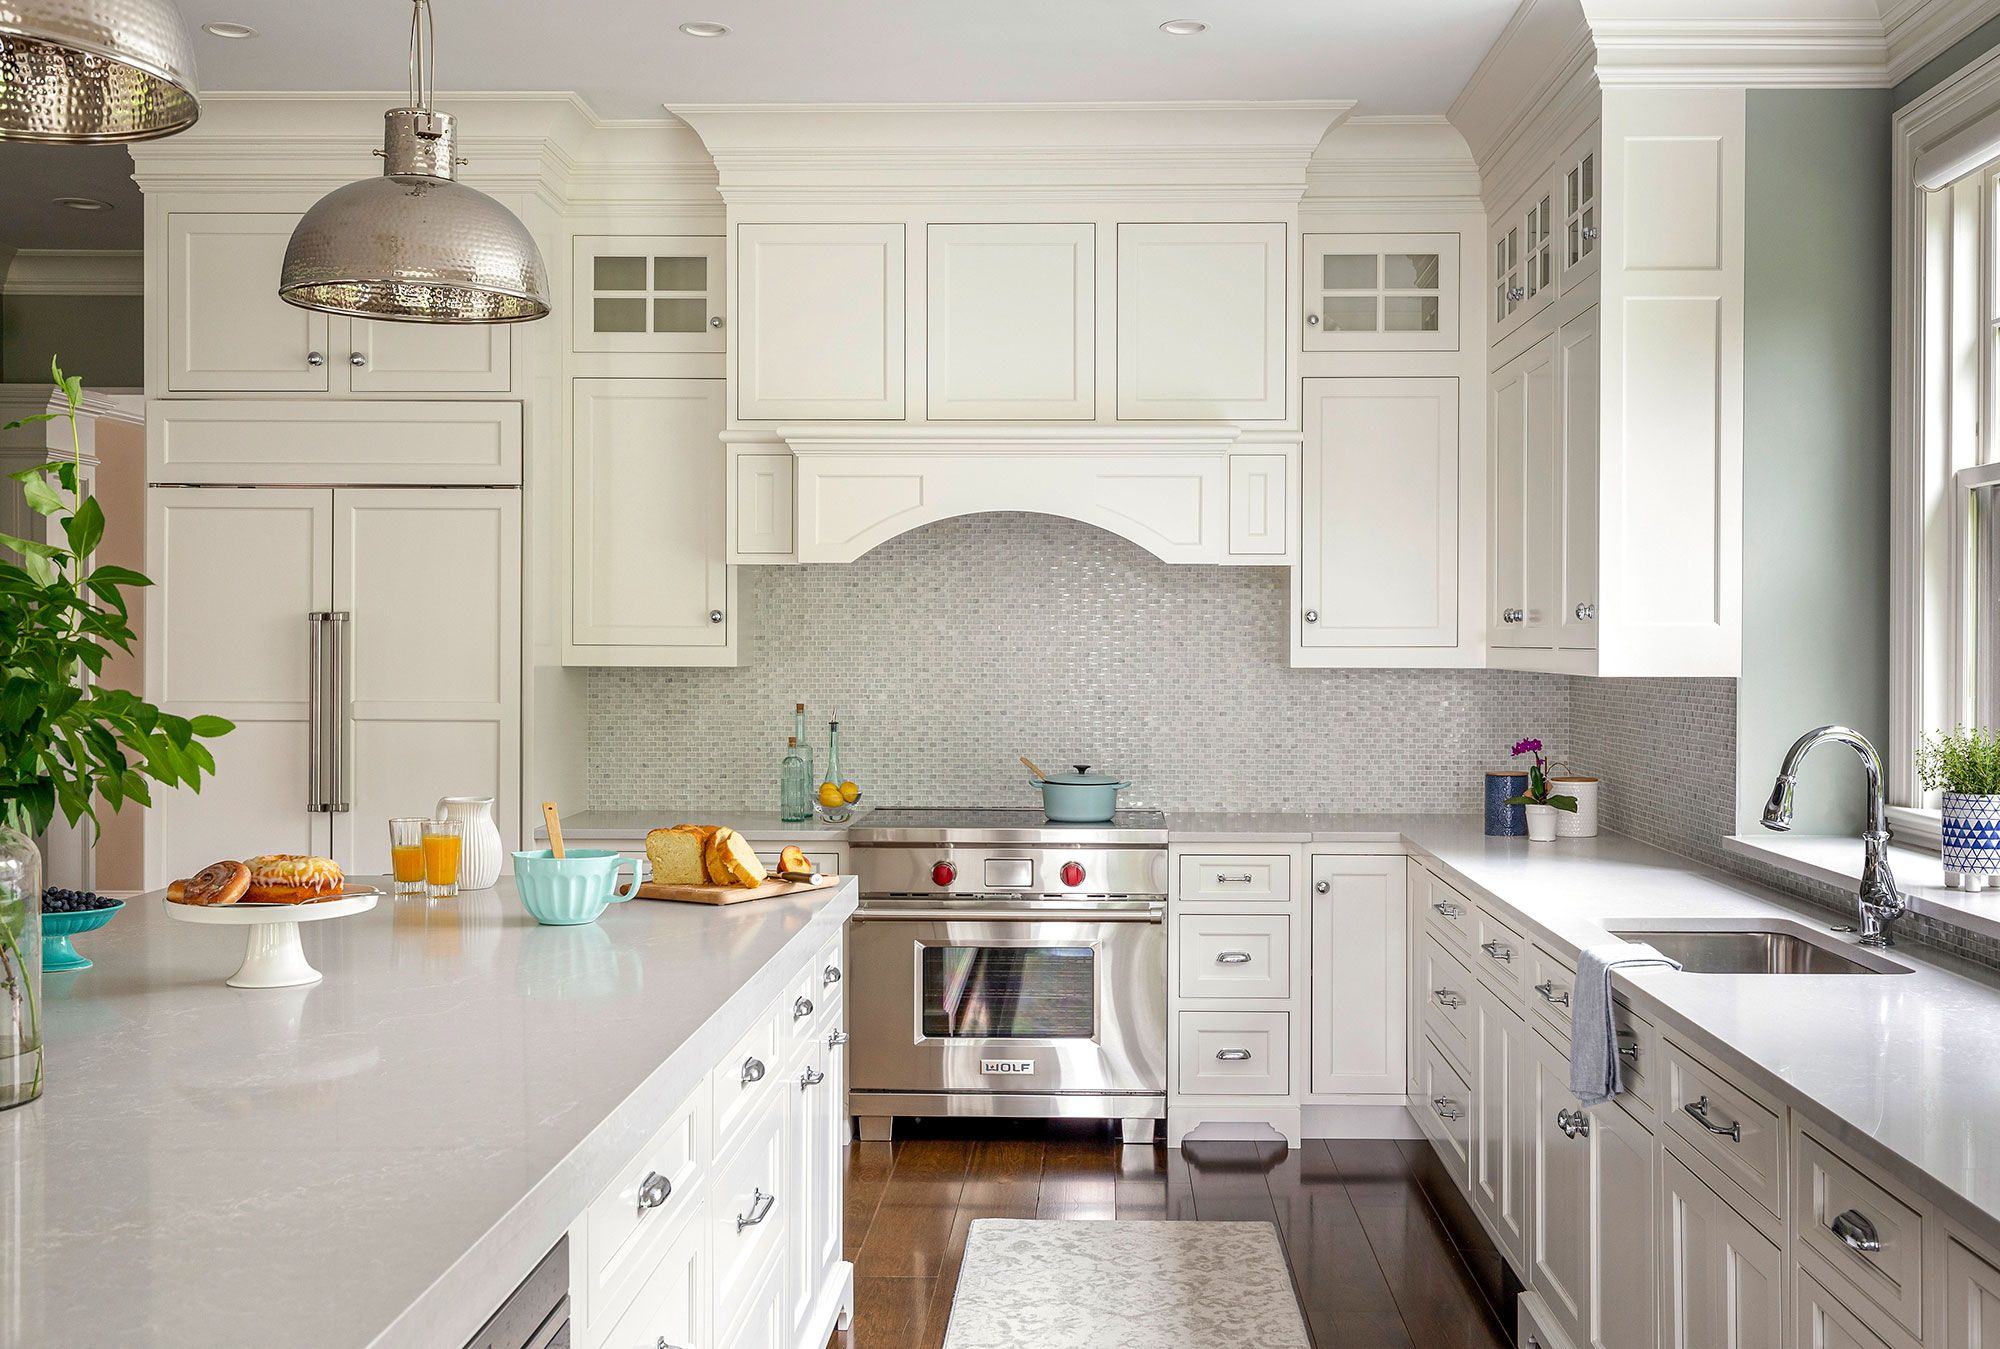 Hawthron Builders Photograph By Micheal Lefebvre Boston Design Guide 23rd Edition Page 103 In 2020 Kitchen Design Boston Design Design